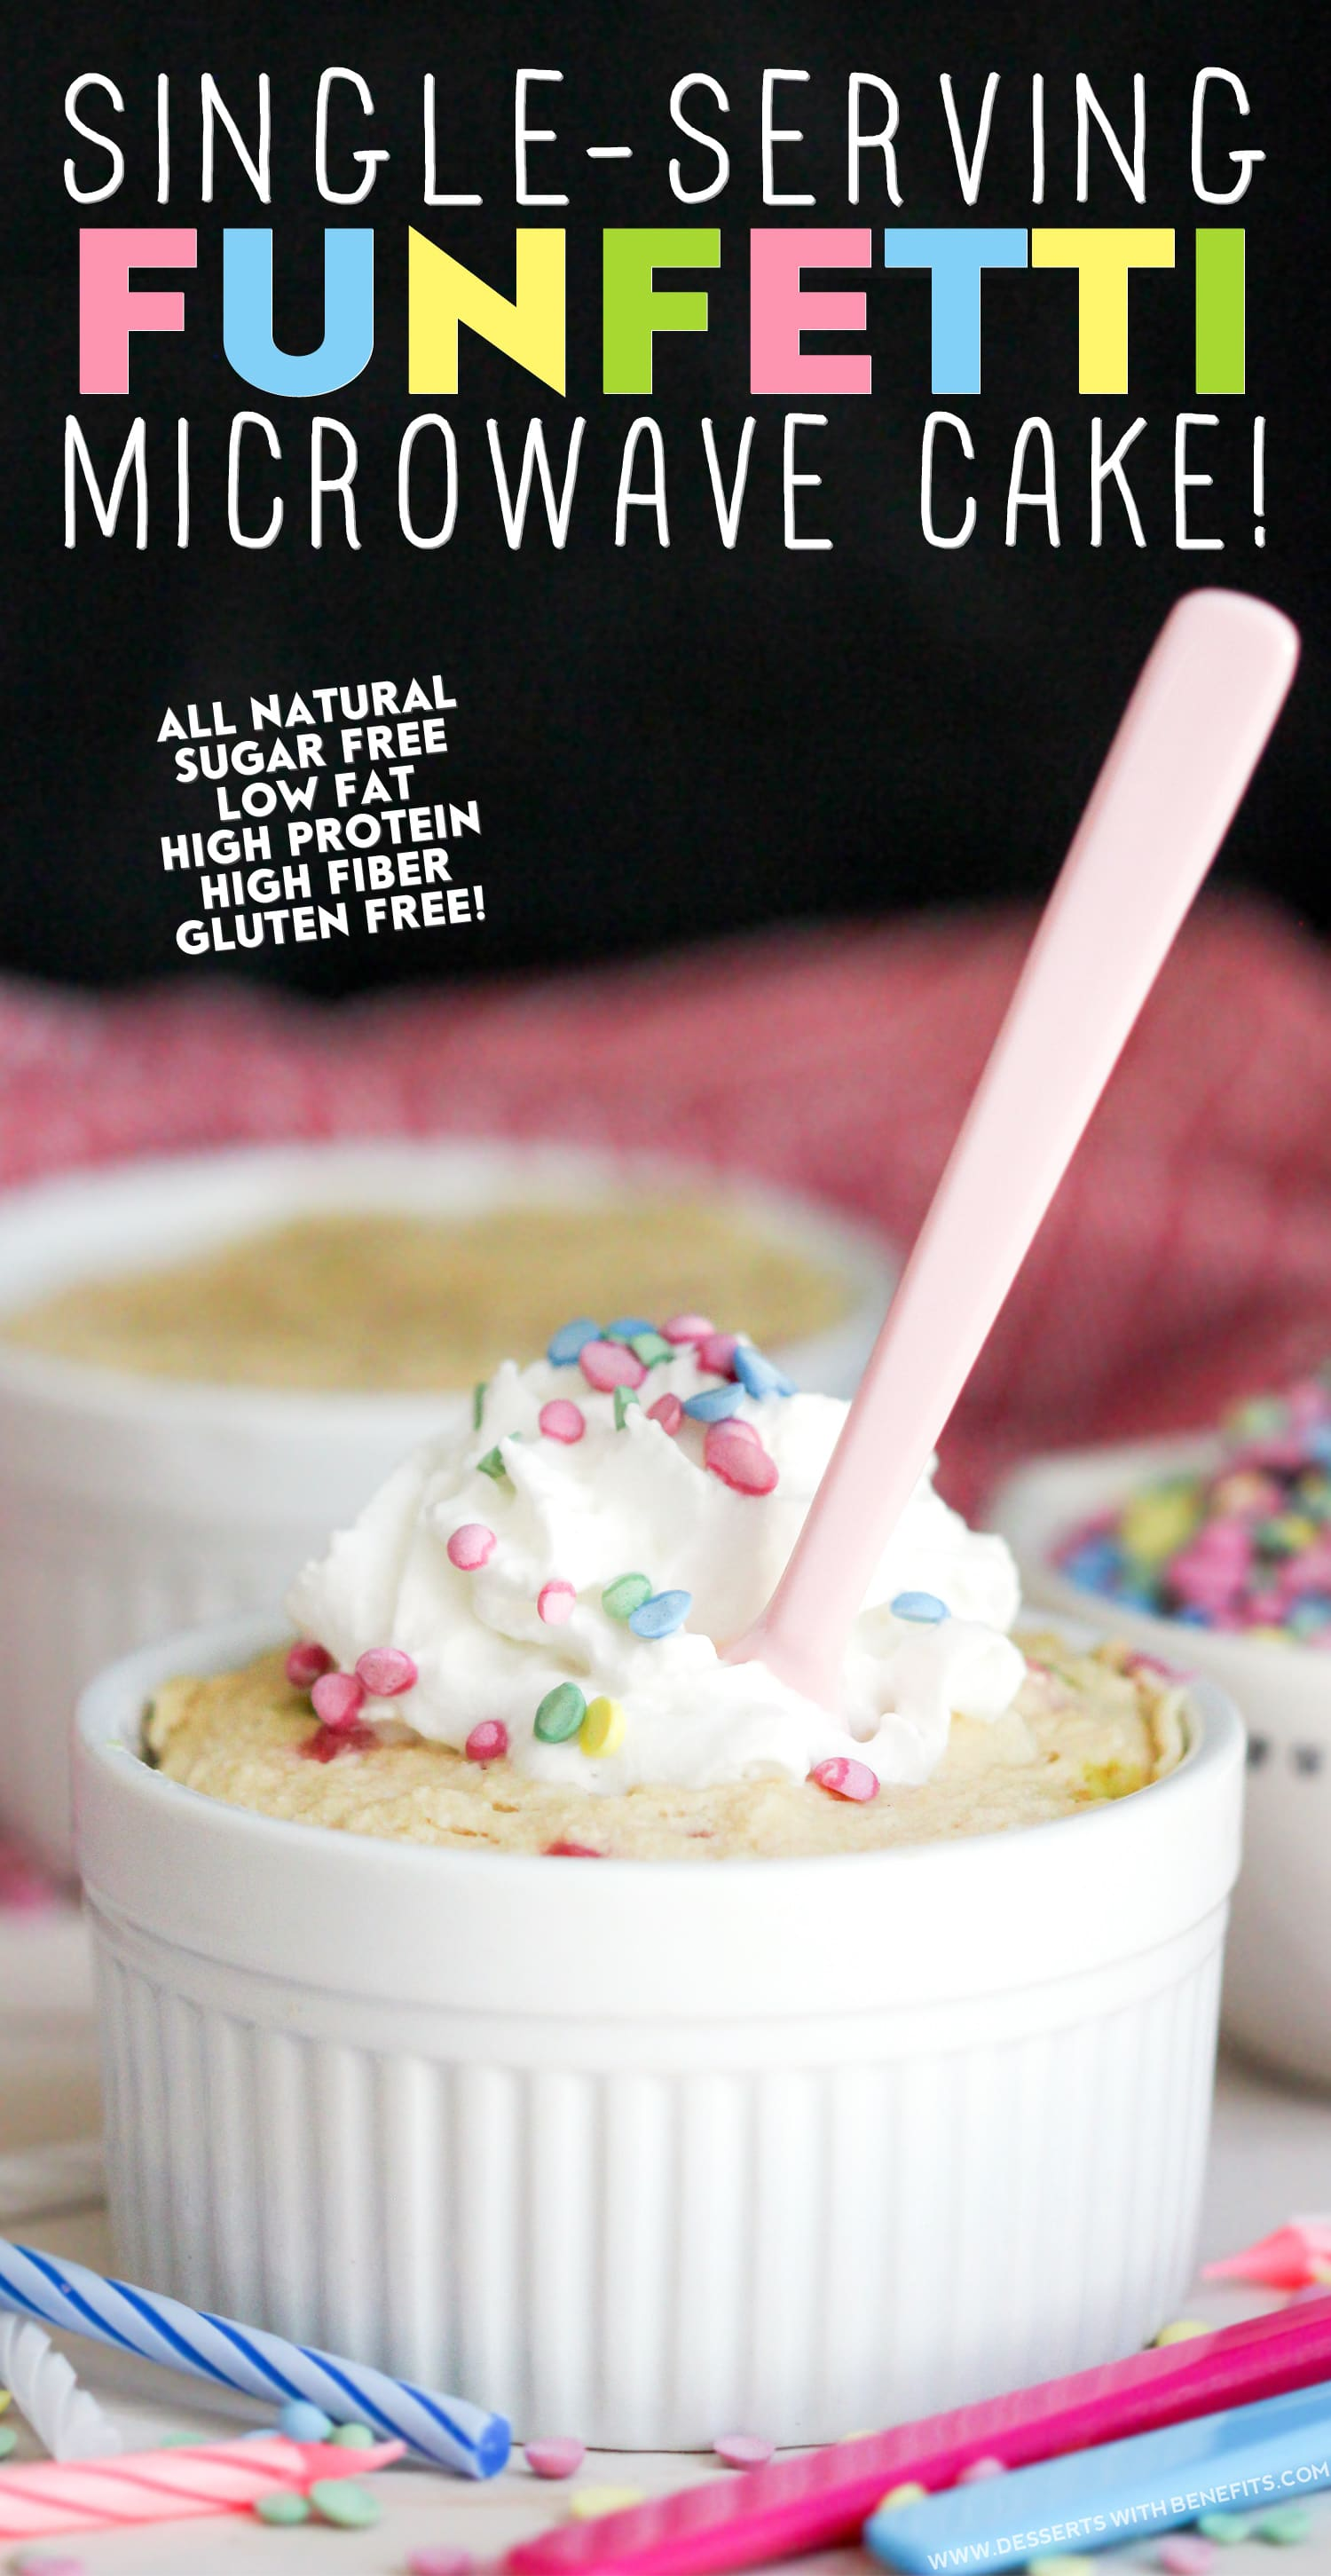 Healthy Single-Serving Funfetti Microwave Cake (all natural, sugar free, low fat, high protein, high fiber and gluten free, with vegan option!) - Healthy Dessert Recipes at Desserts with Benefits